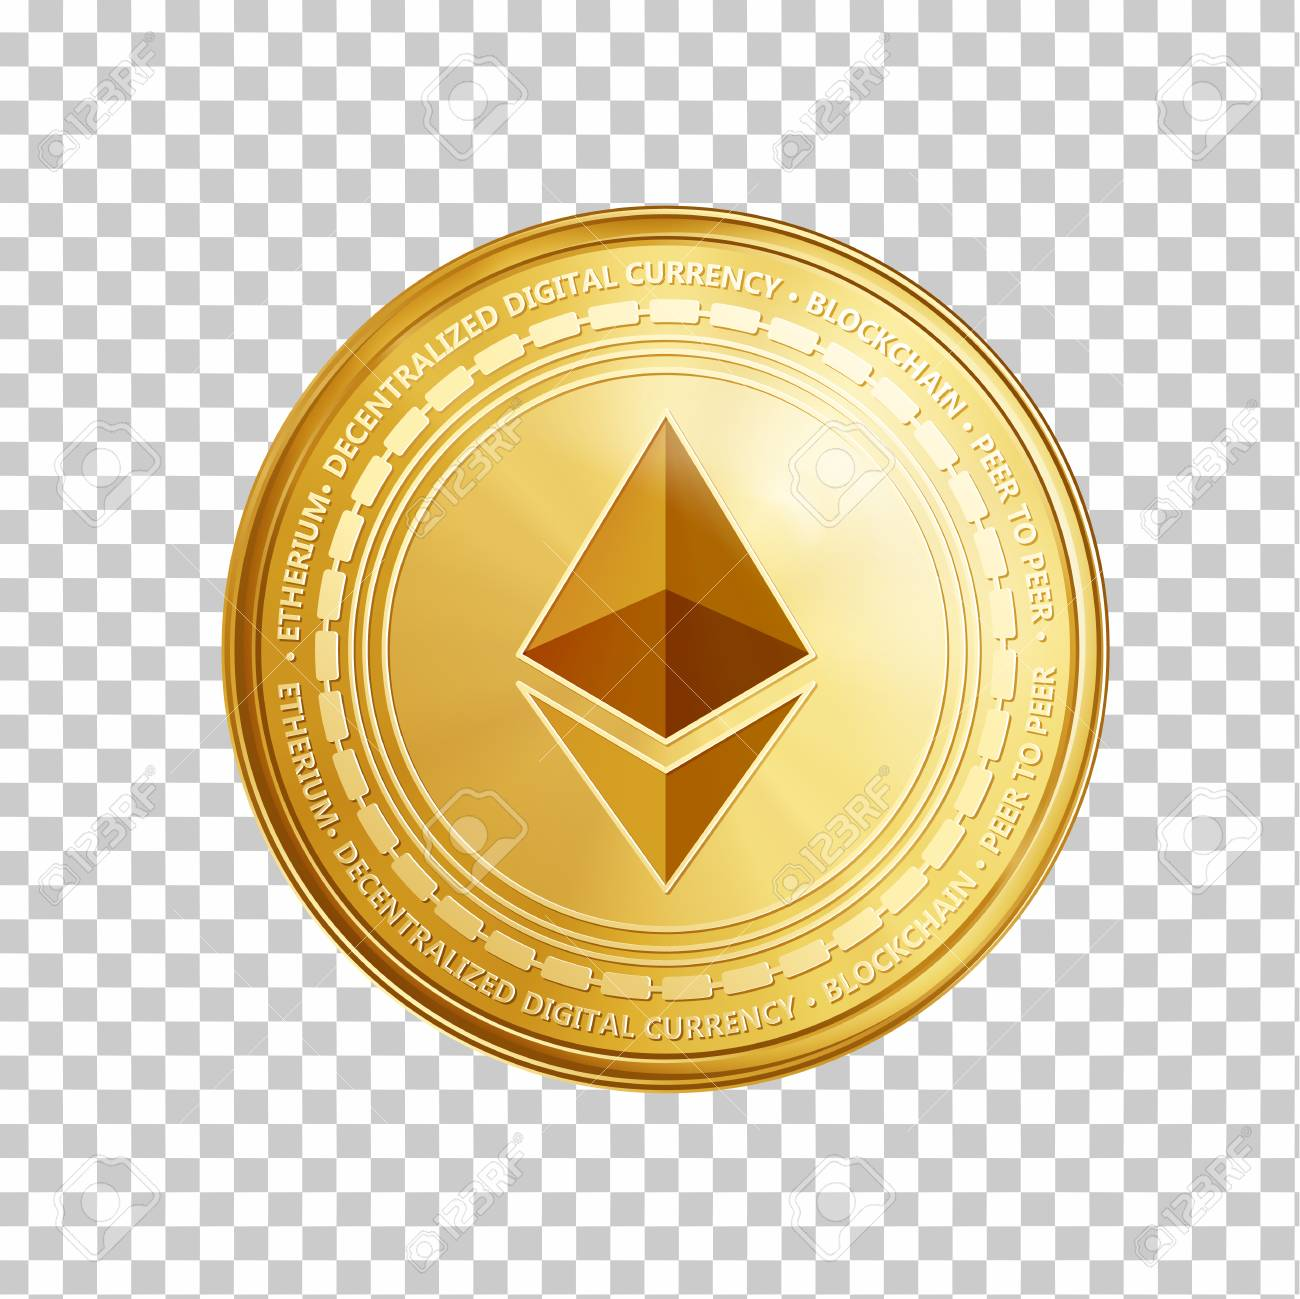 Golden ethereum coin. Crypto currency golden coin ethereum symbol isolated on transparent background. Realistic vector illustration. - 91650083